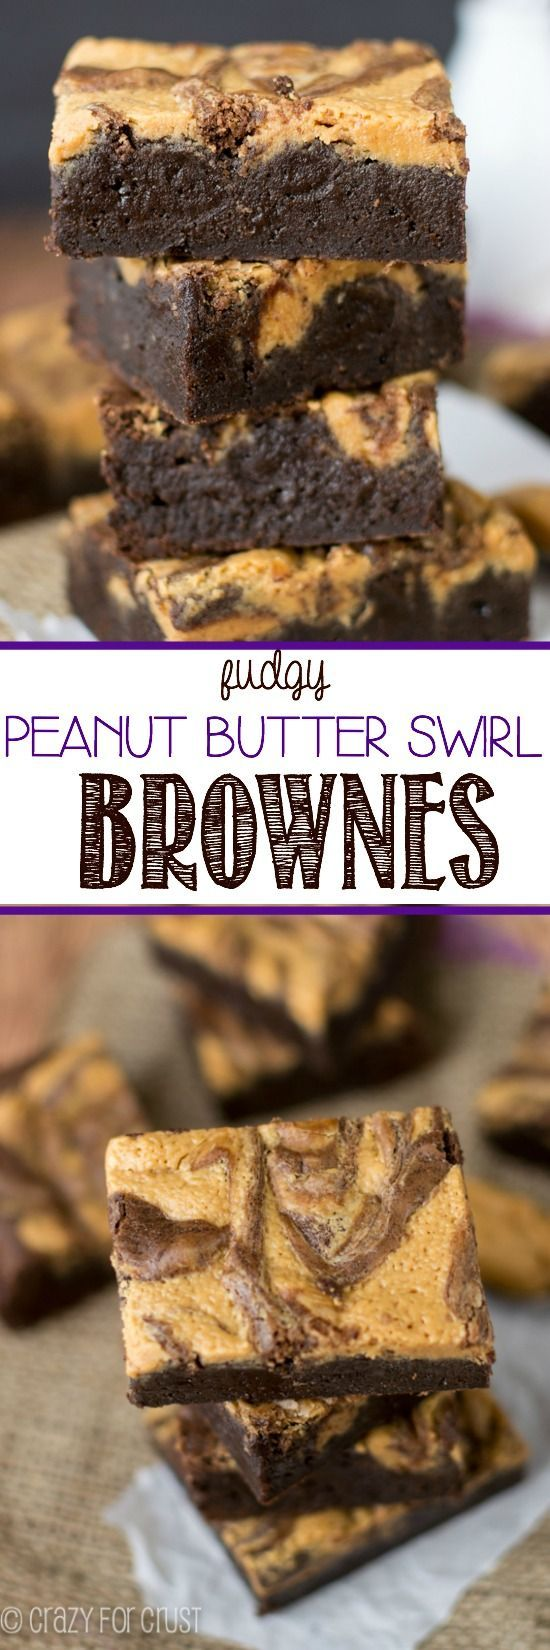 Fudgy Peanut Butter Swirl Brownies - this easy recipe is super chocolatey, super peanut buttery, and super fudgy!